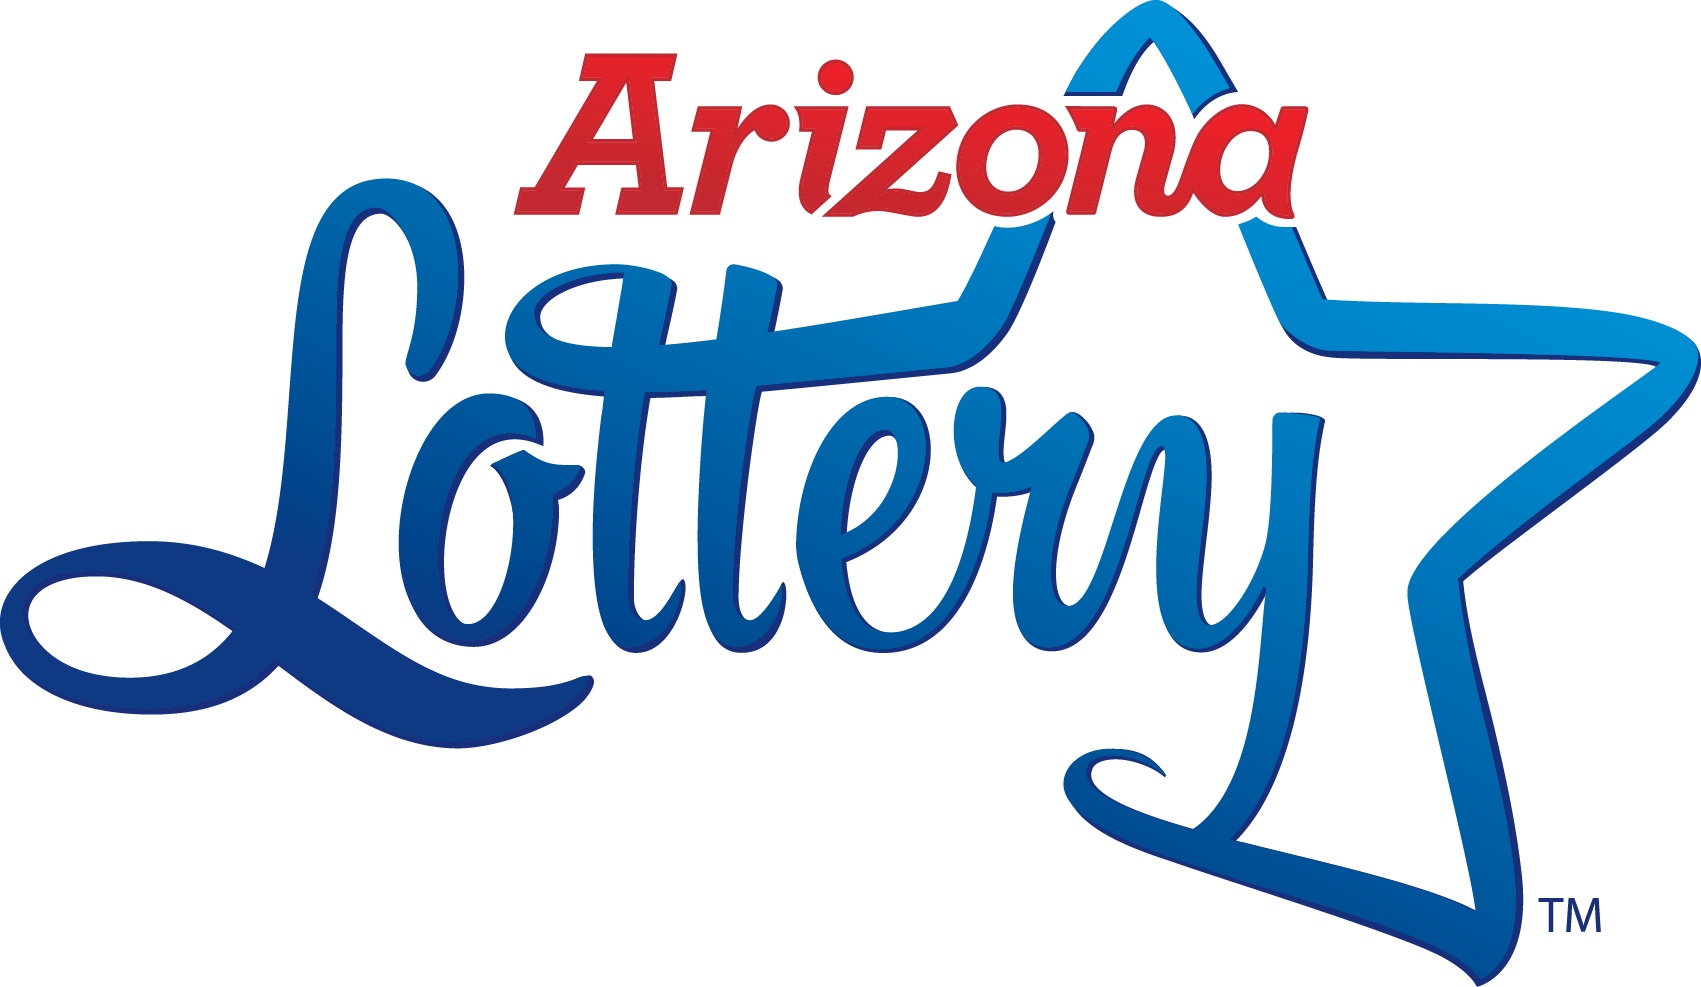 Find out how Arizona Lottery is Helping Us Help Others